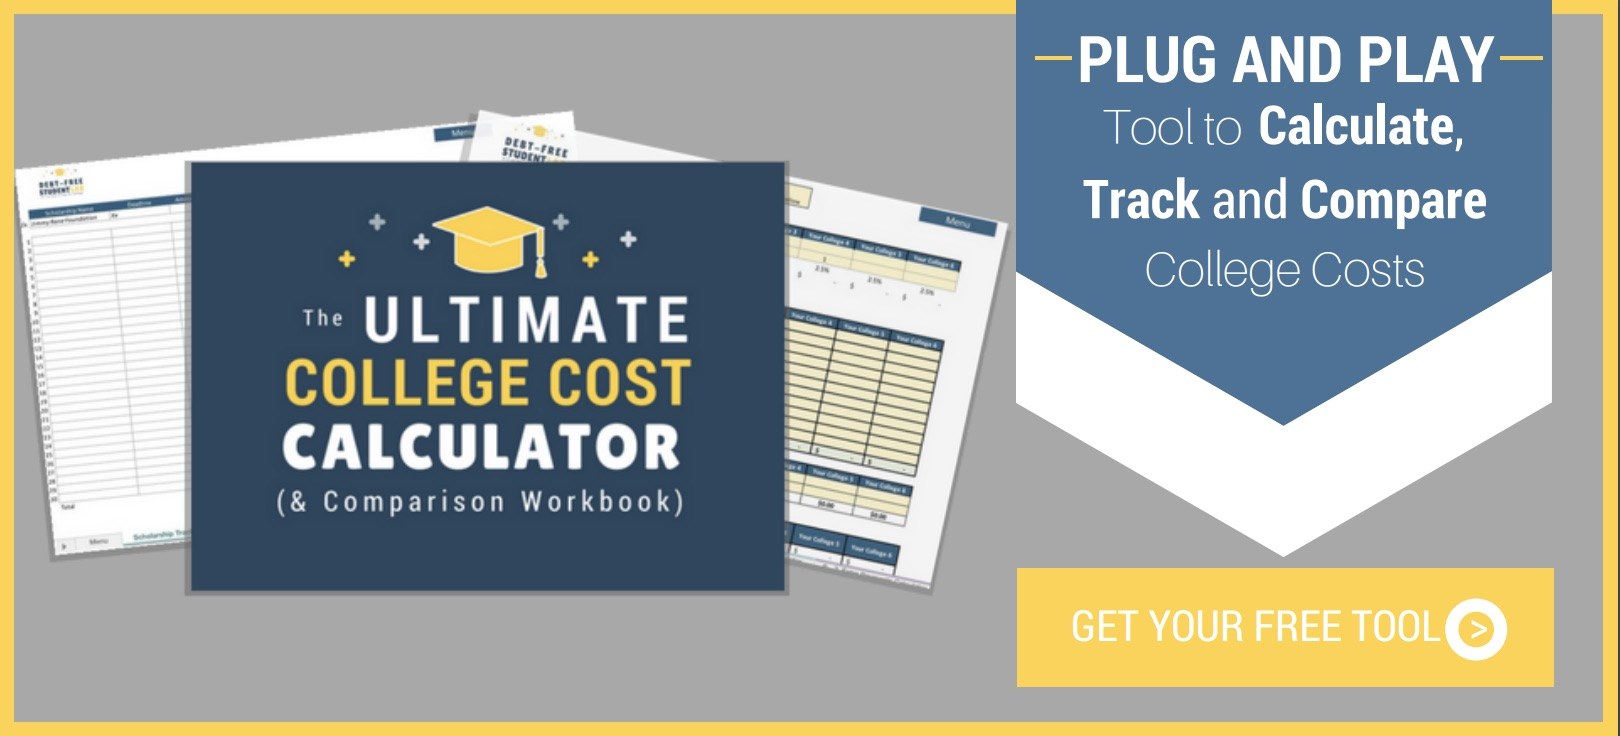 Grab your free calculator